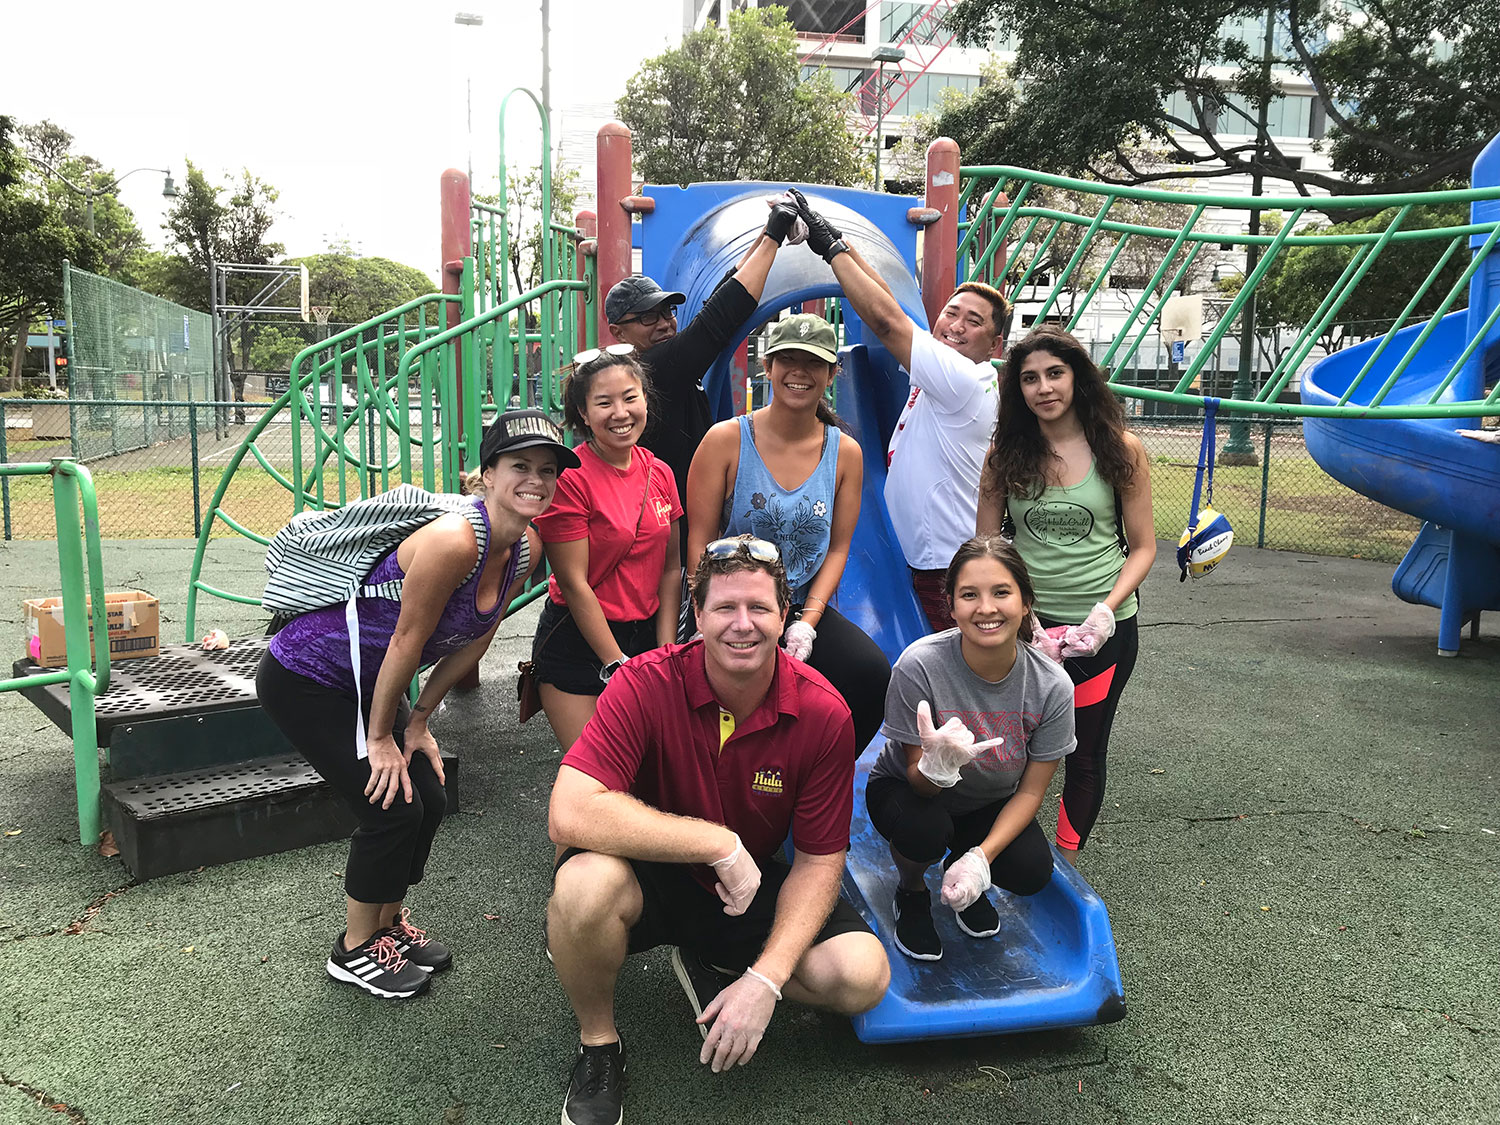 Group of people helping out at a playground outdoors